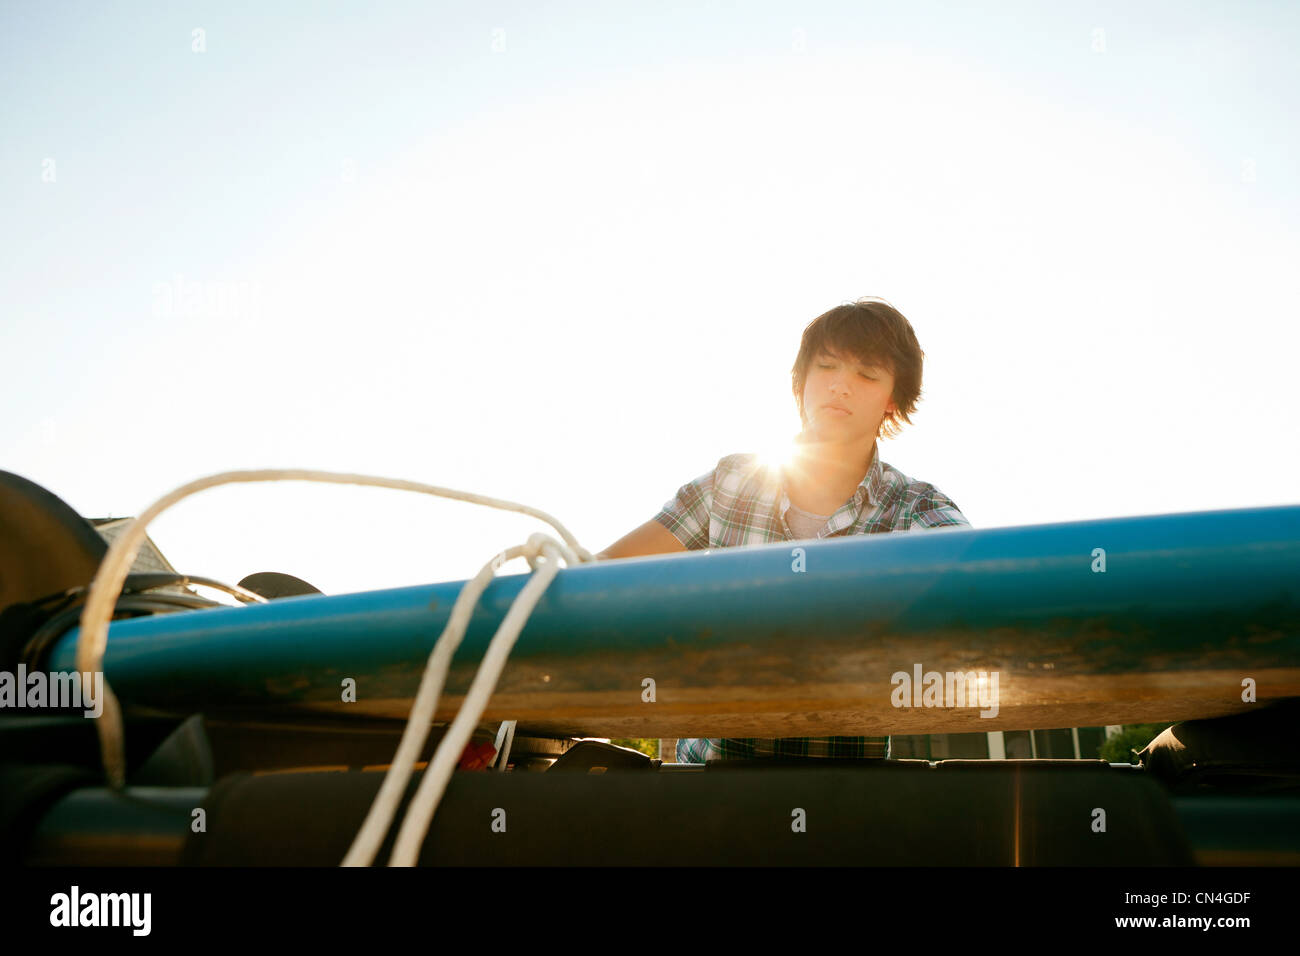 Teenager untying his board from roof of jeep - Stock Image